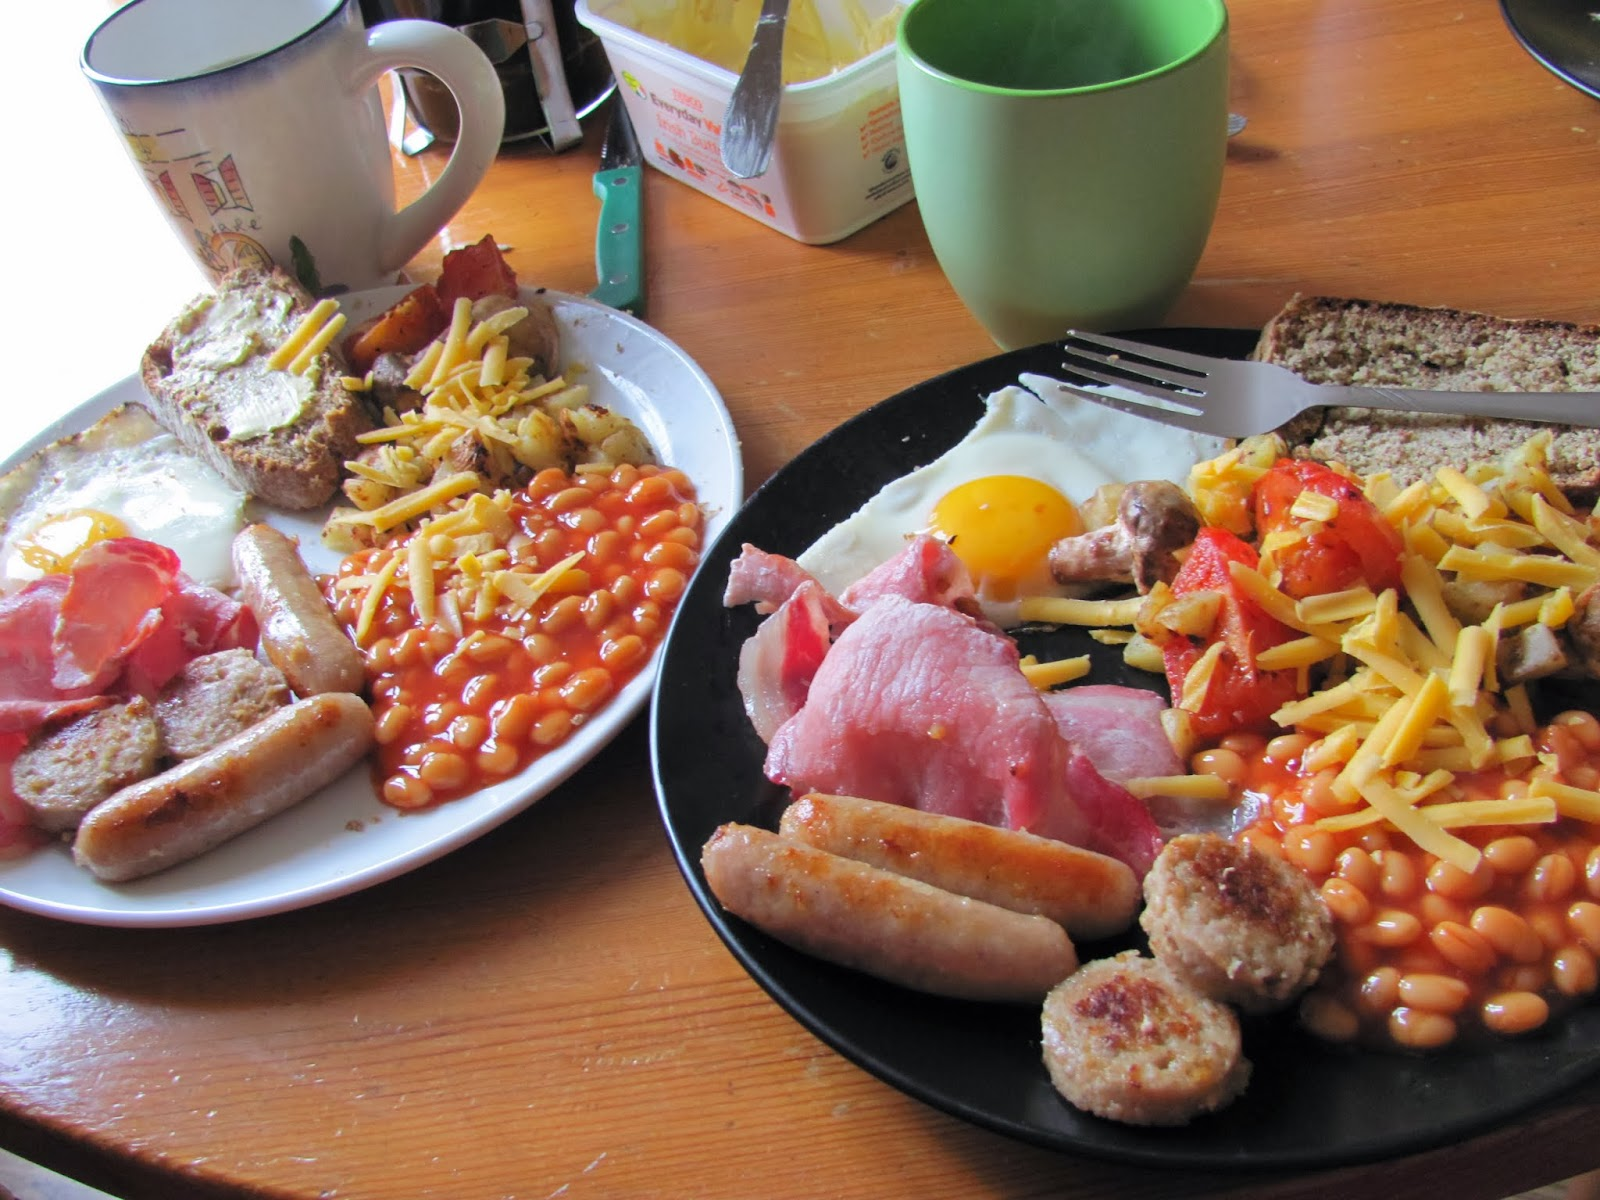 Two plates of Full Irish Breakfast with coffee